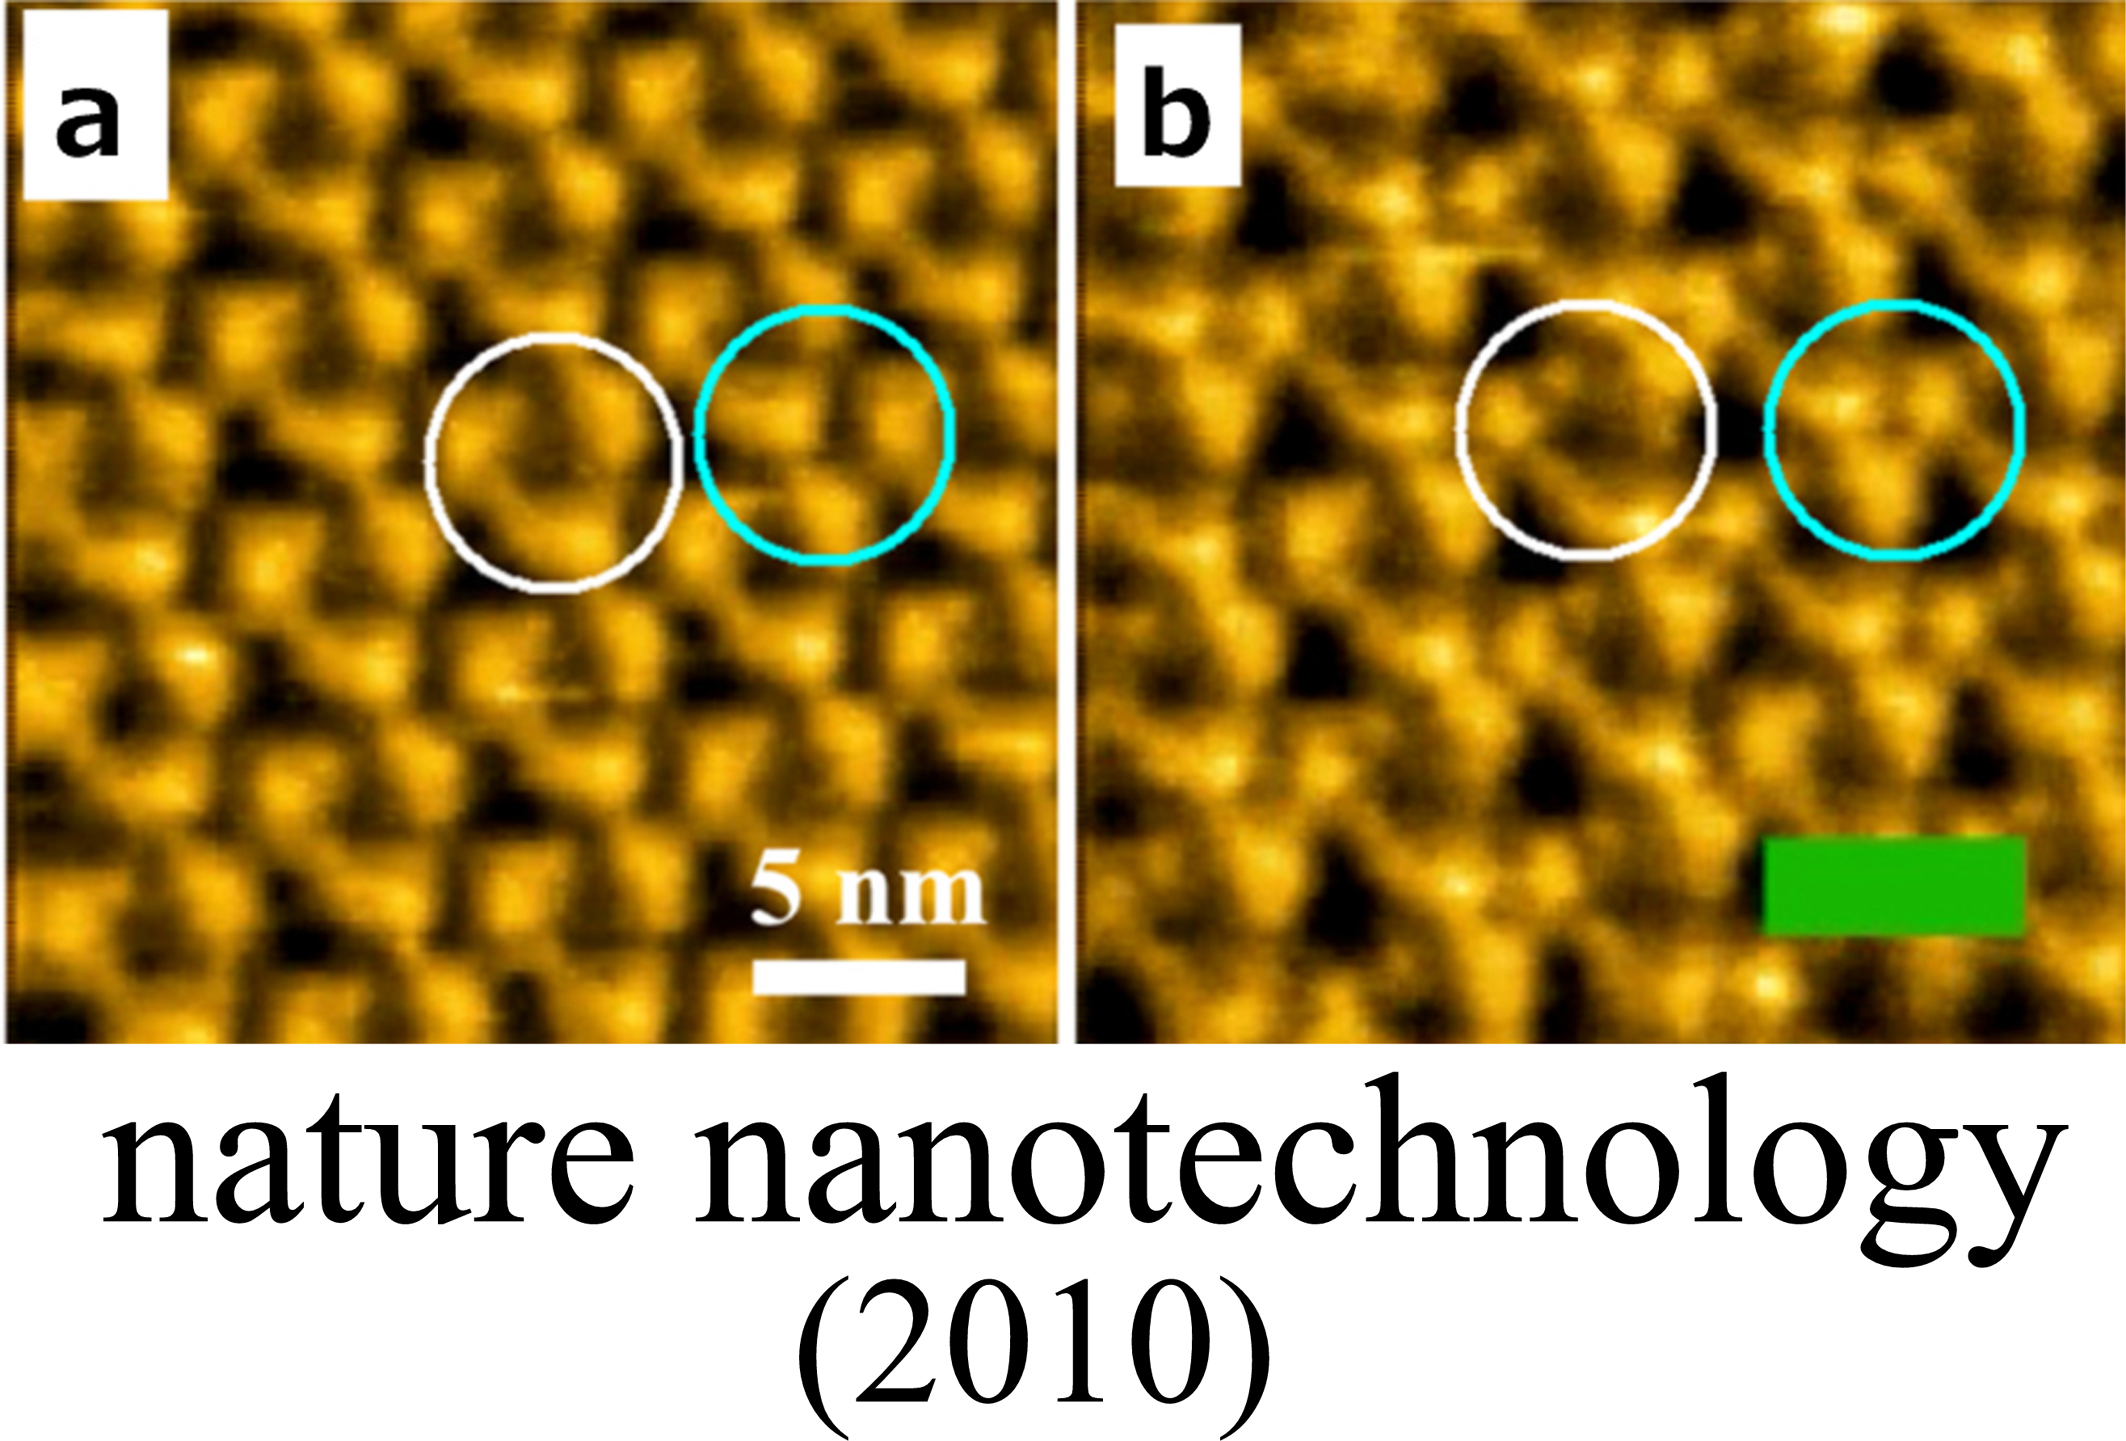 Development and Biological Application of High-speed Atomic Force Microscopy